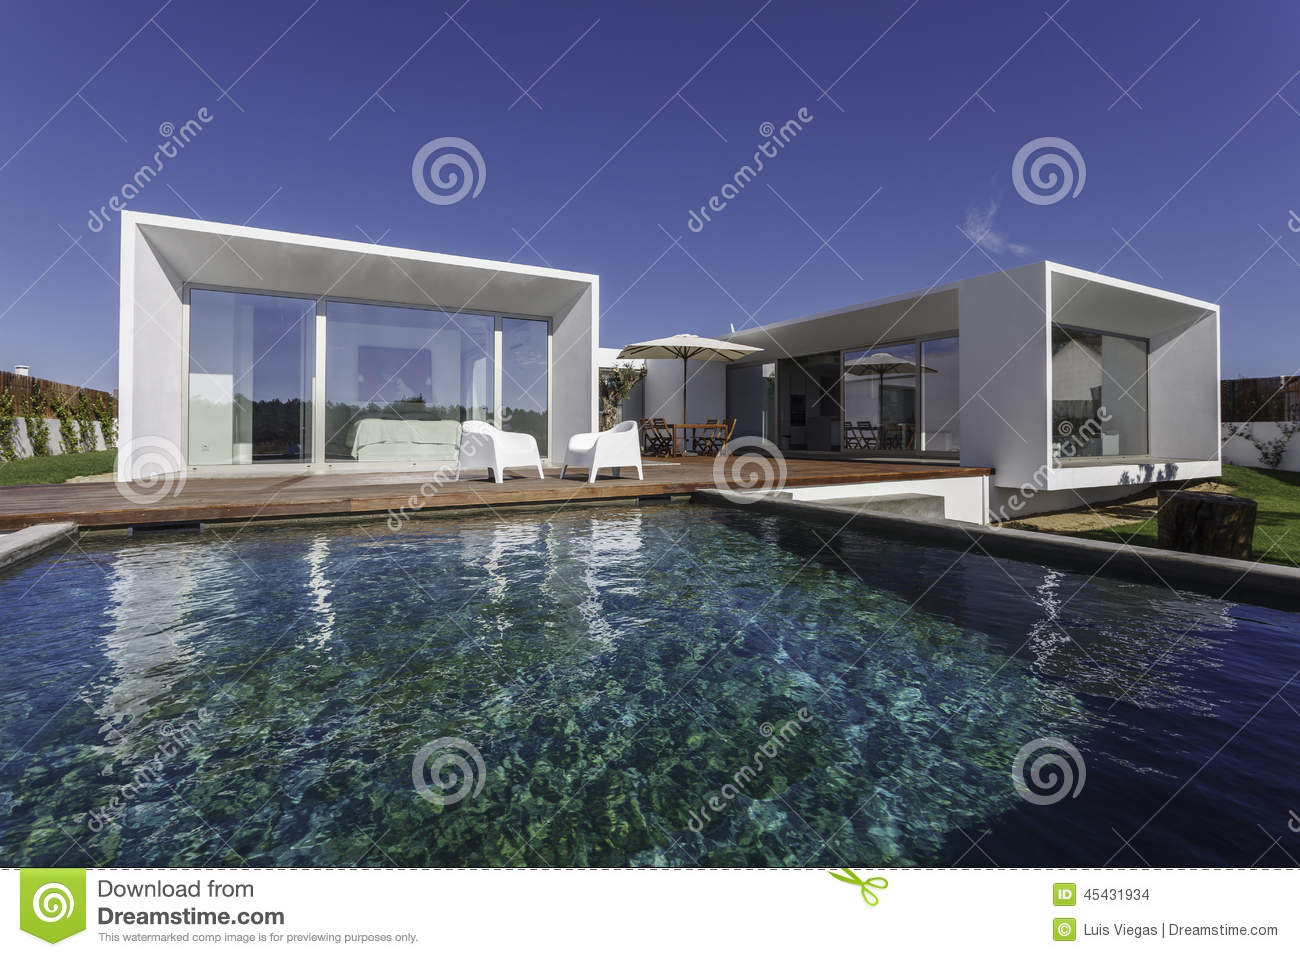 Modern house with garden swimming pool and wooden deck.